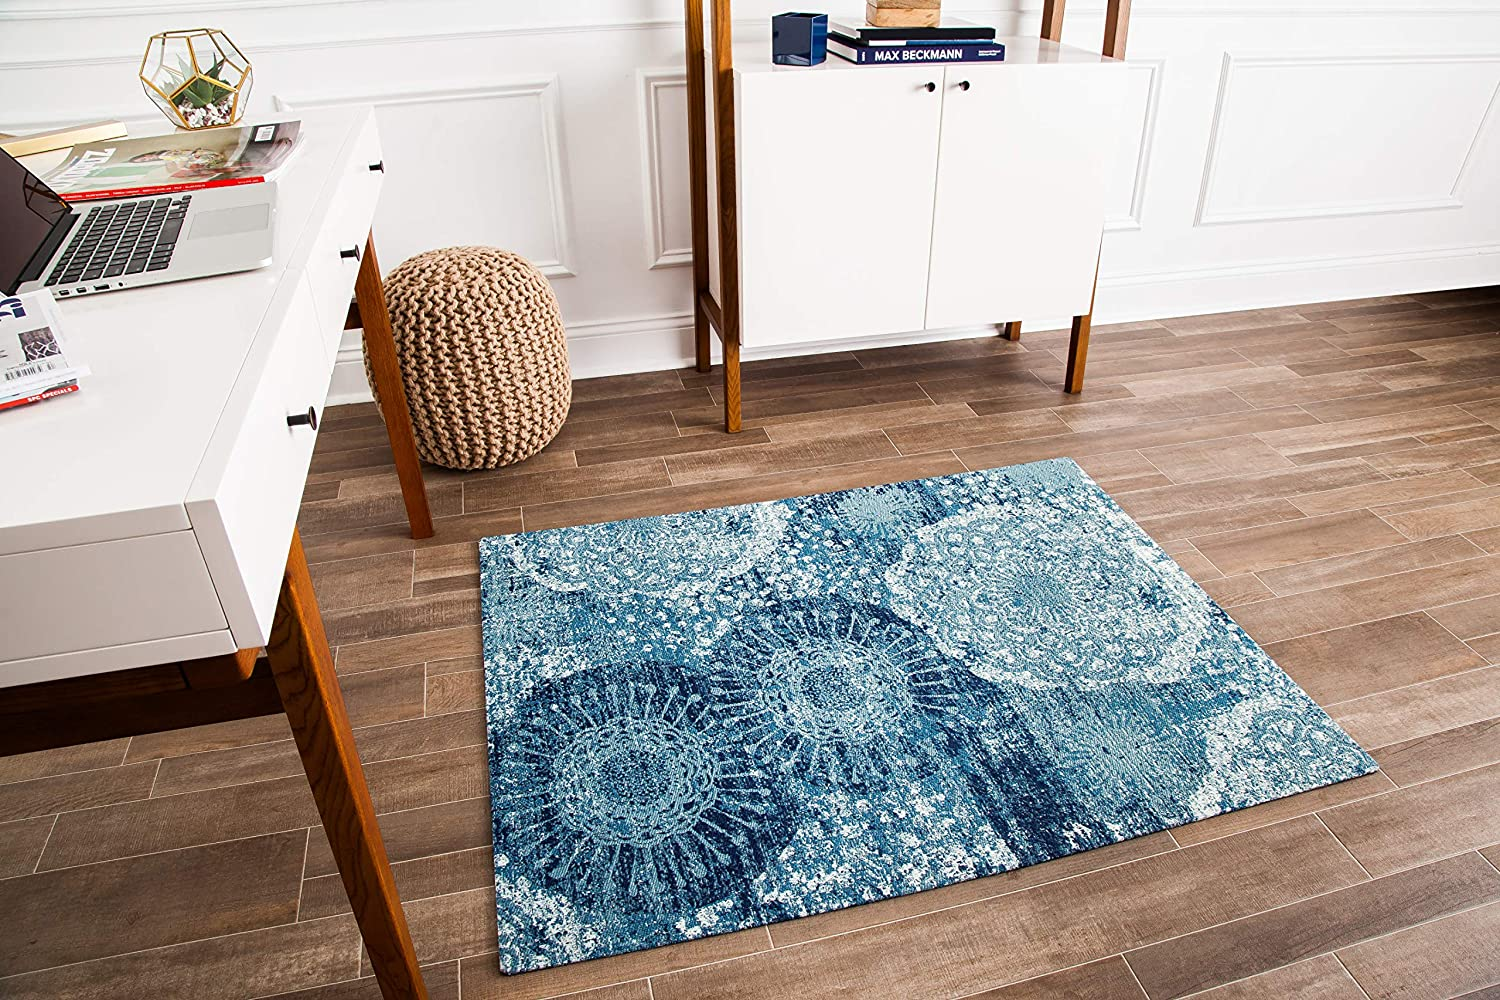 Anji Mountain Chair Mat Rug d Collection, 1 2 Thick – For All Surfaces, Maldives , Distressed Blue Floral